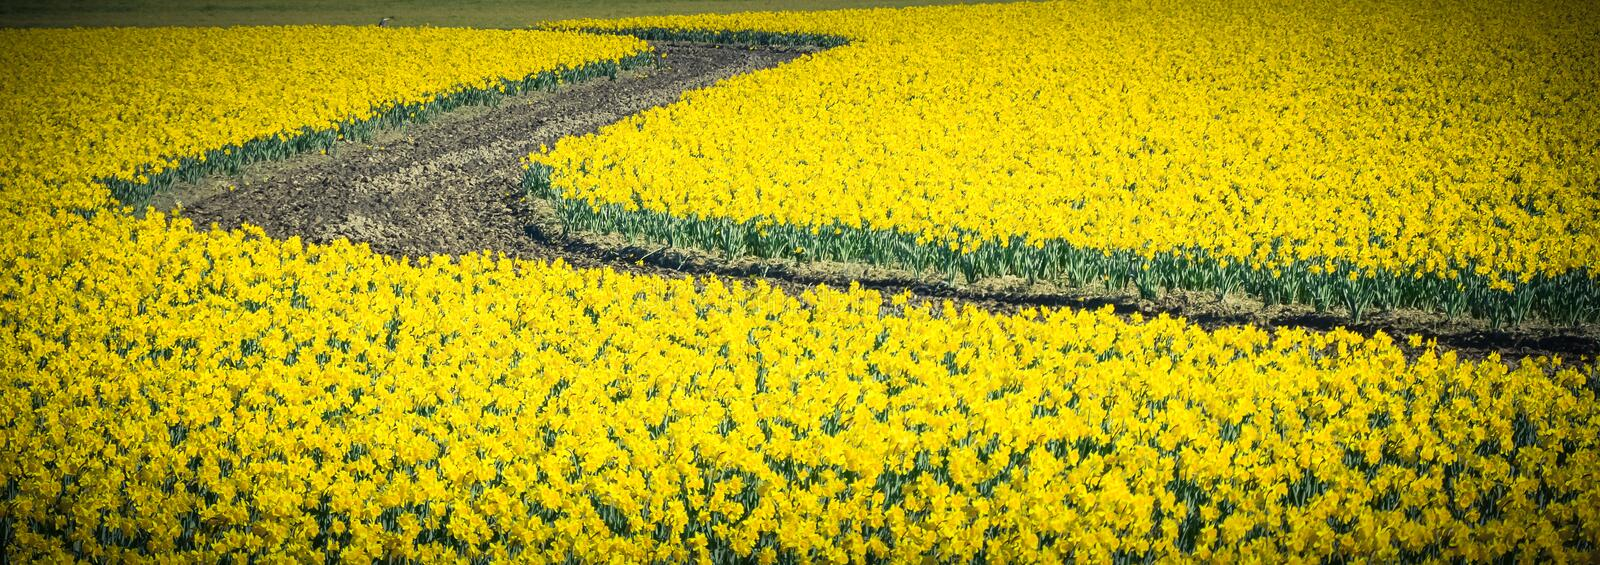 Top view s-curved winding path in daffodil farm at Skagit Valley. WA, USA. Springfield of bright yellow narcissus flower blossom. Nature and agriculture stock images